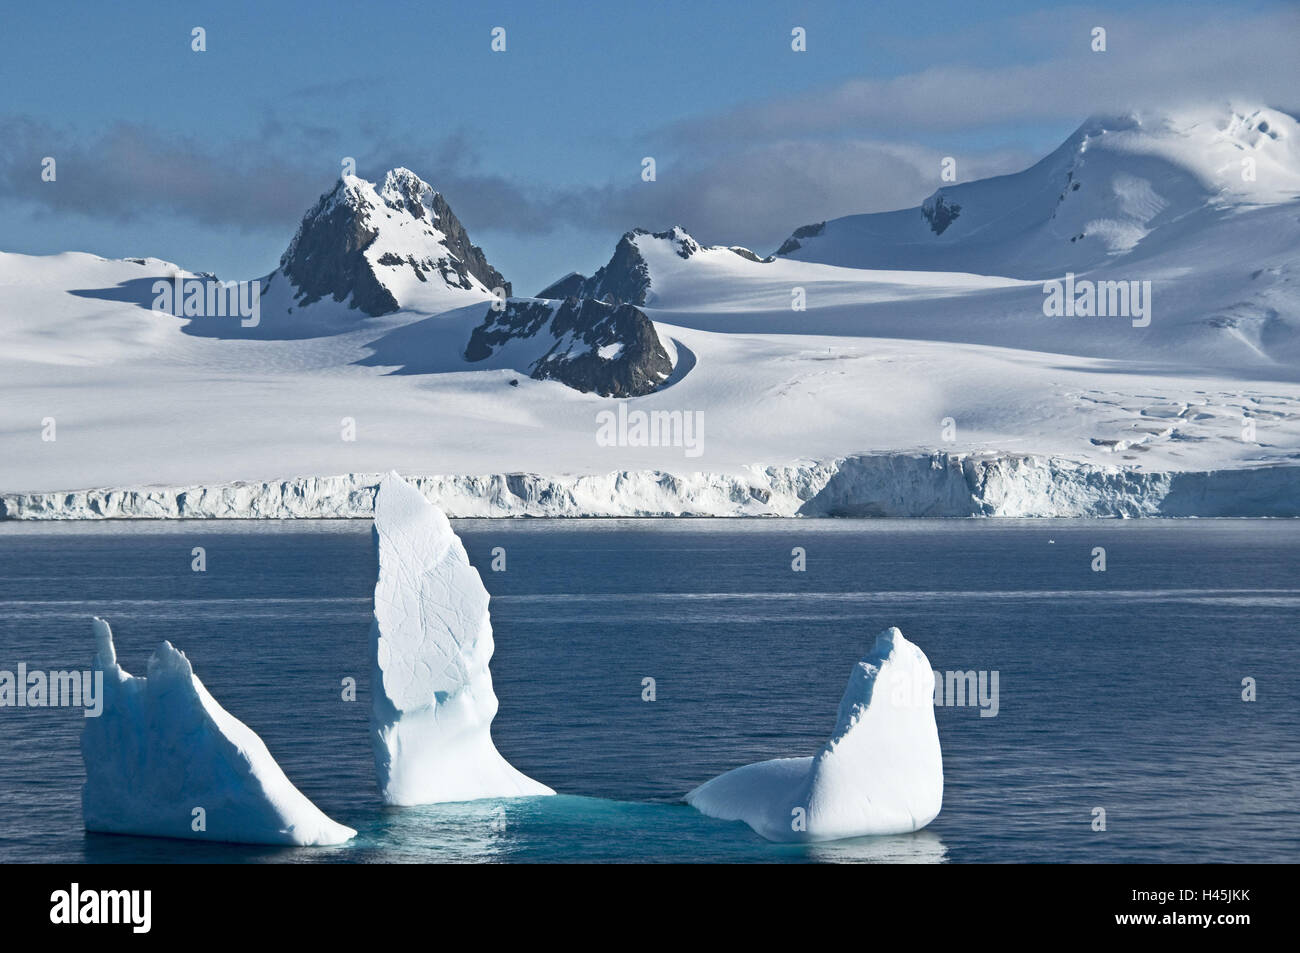 Antarctic, South Shetland islands, Livingston island, mountains, - Stock Image